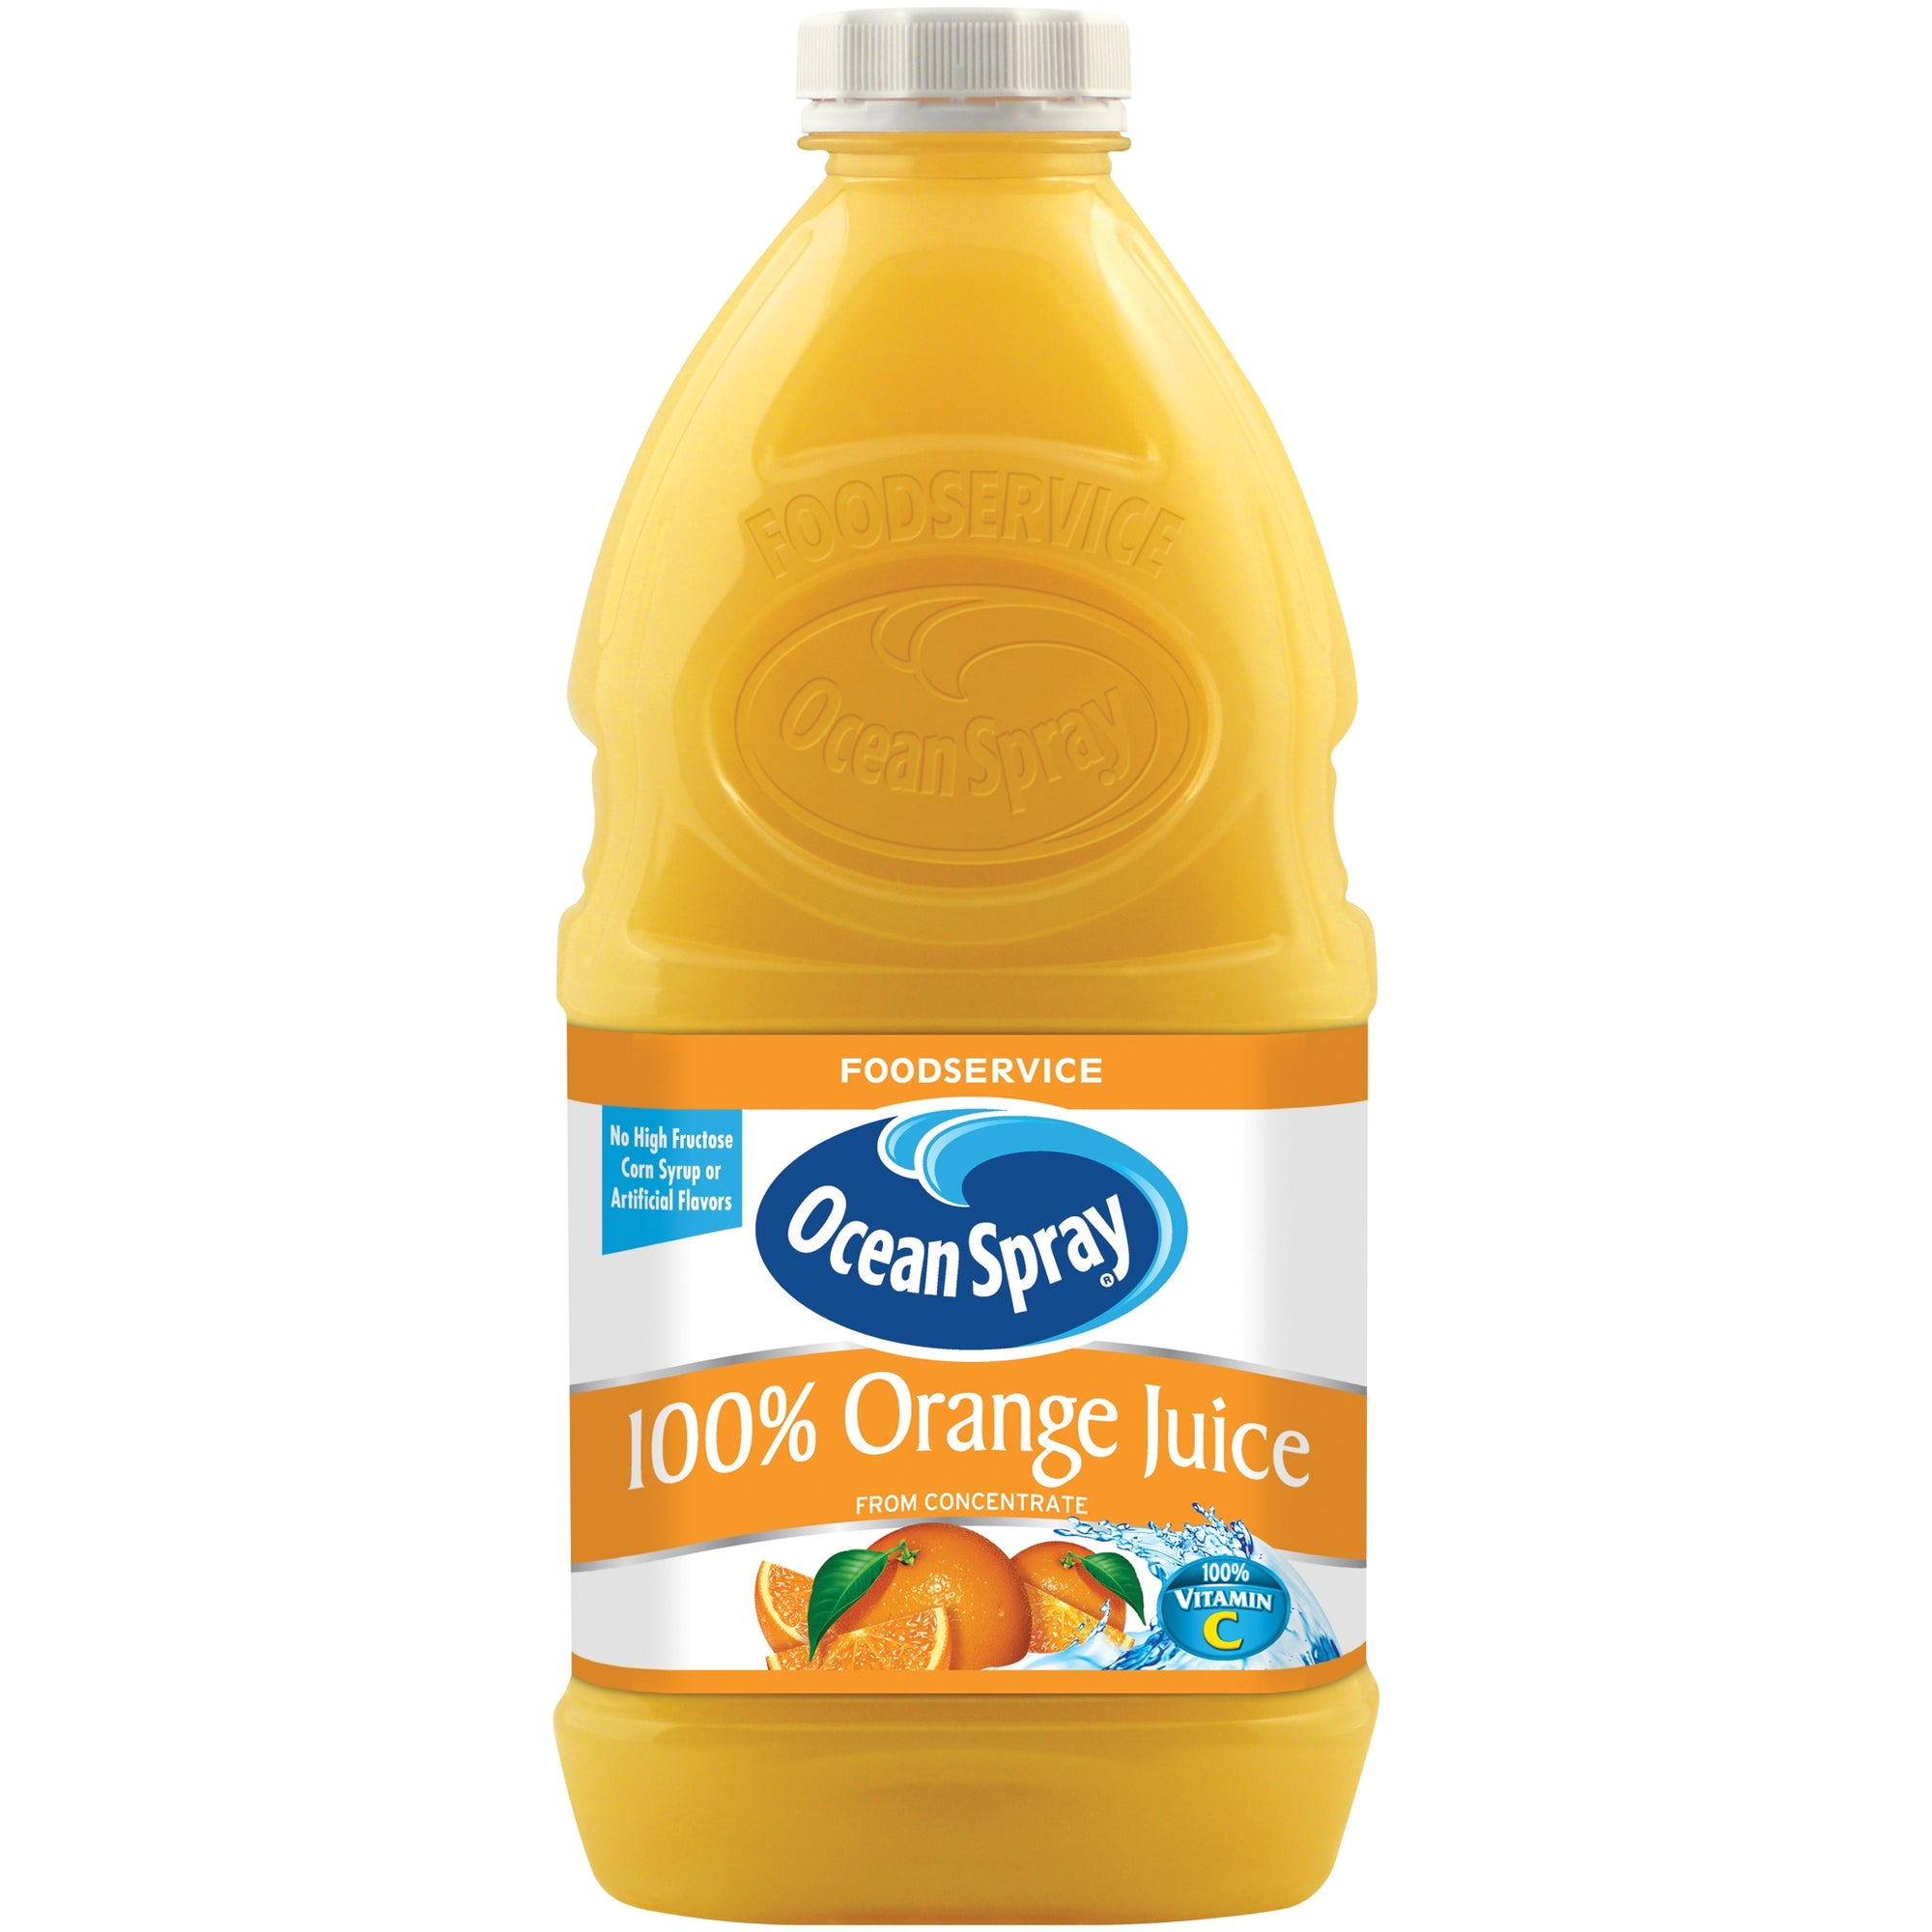 Ocean Spray 100% Orange Juice (60oz)